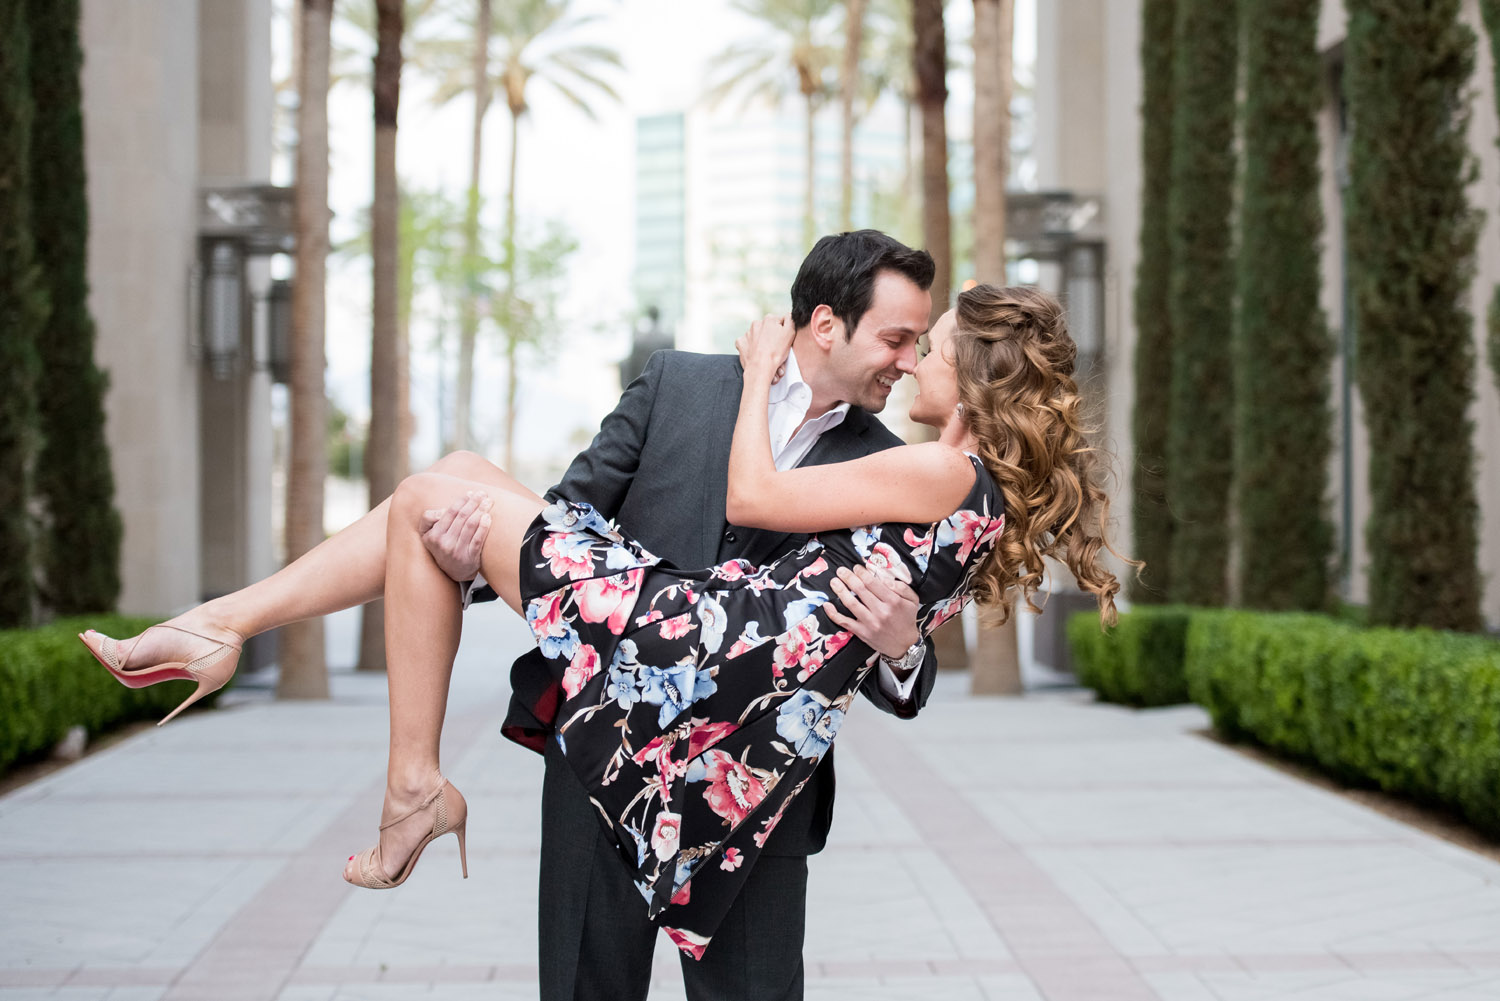 Engagement Session | Kristen Marie Weddings + Portraits, Las Vegas wedding photographer